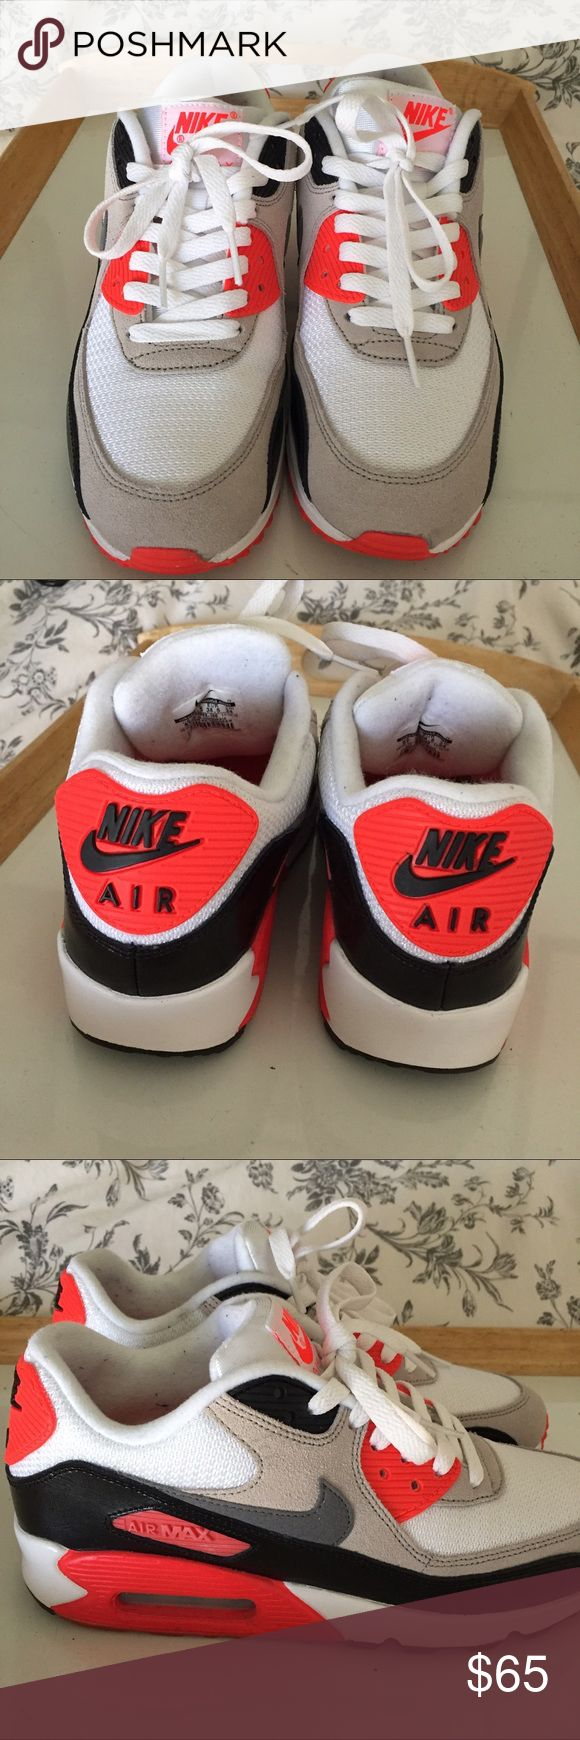 Nike Air Max 90 Infrared (Classic) Nike Air Max 90 Infrared Premium Mesh (Unisex) In great condition; rarely worn. Size 6 youth / Women's 7.5 Regular price $100   NO TRADES Nike Shoes Sneakers